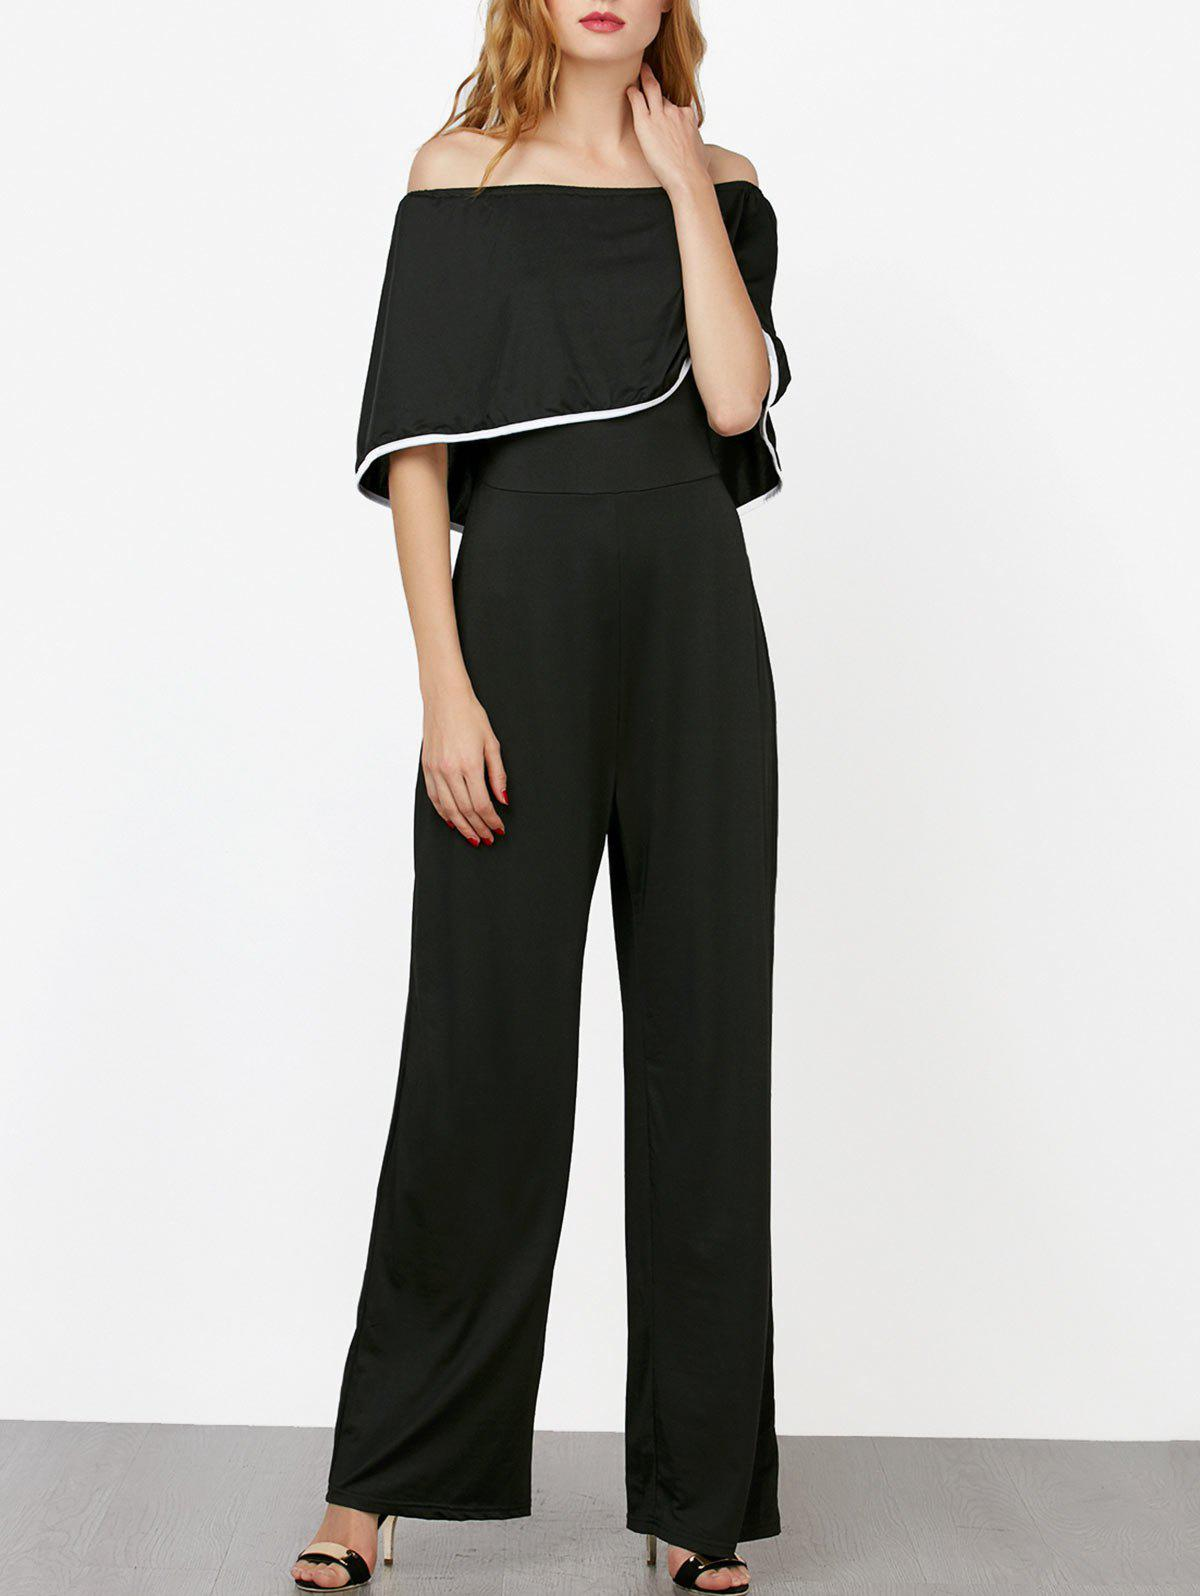 Off The Shoulder Contrast Piped Jumpsuit - BLACK L